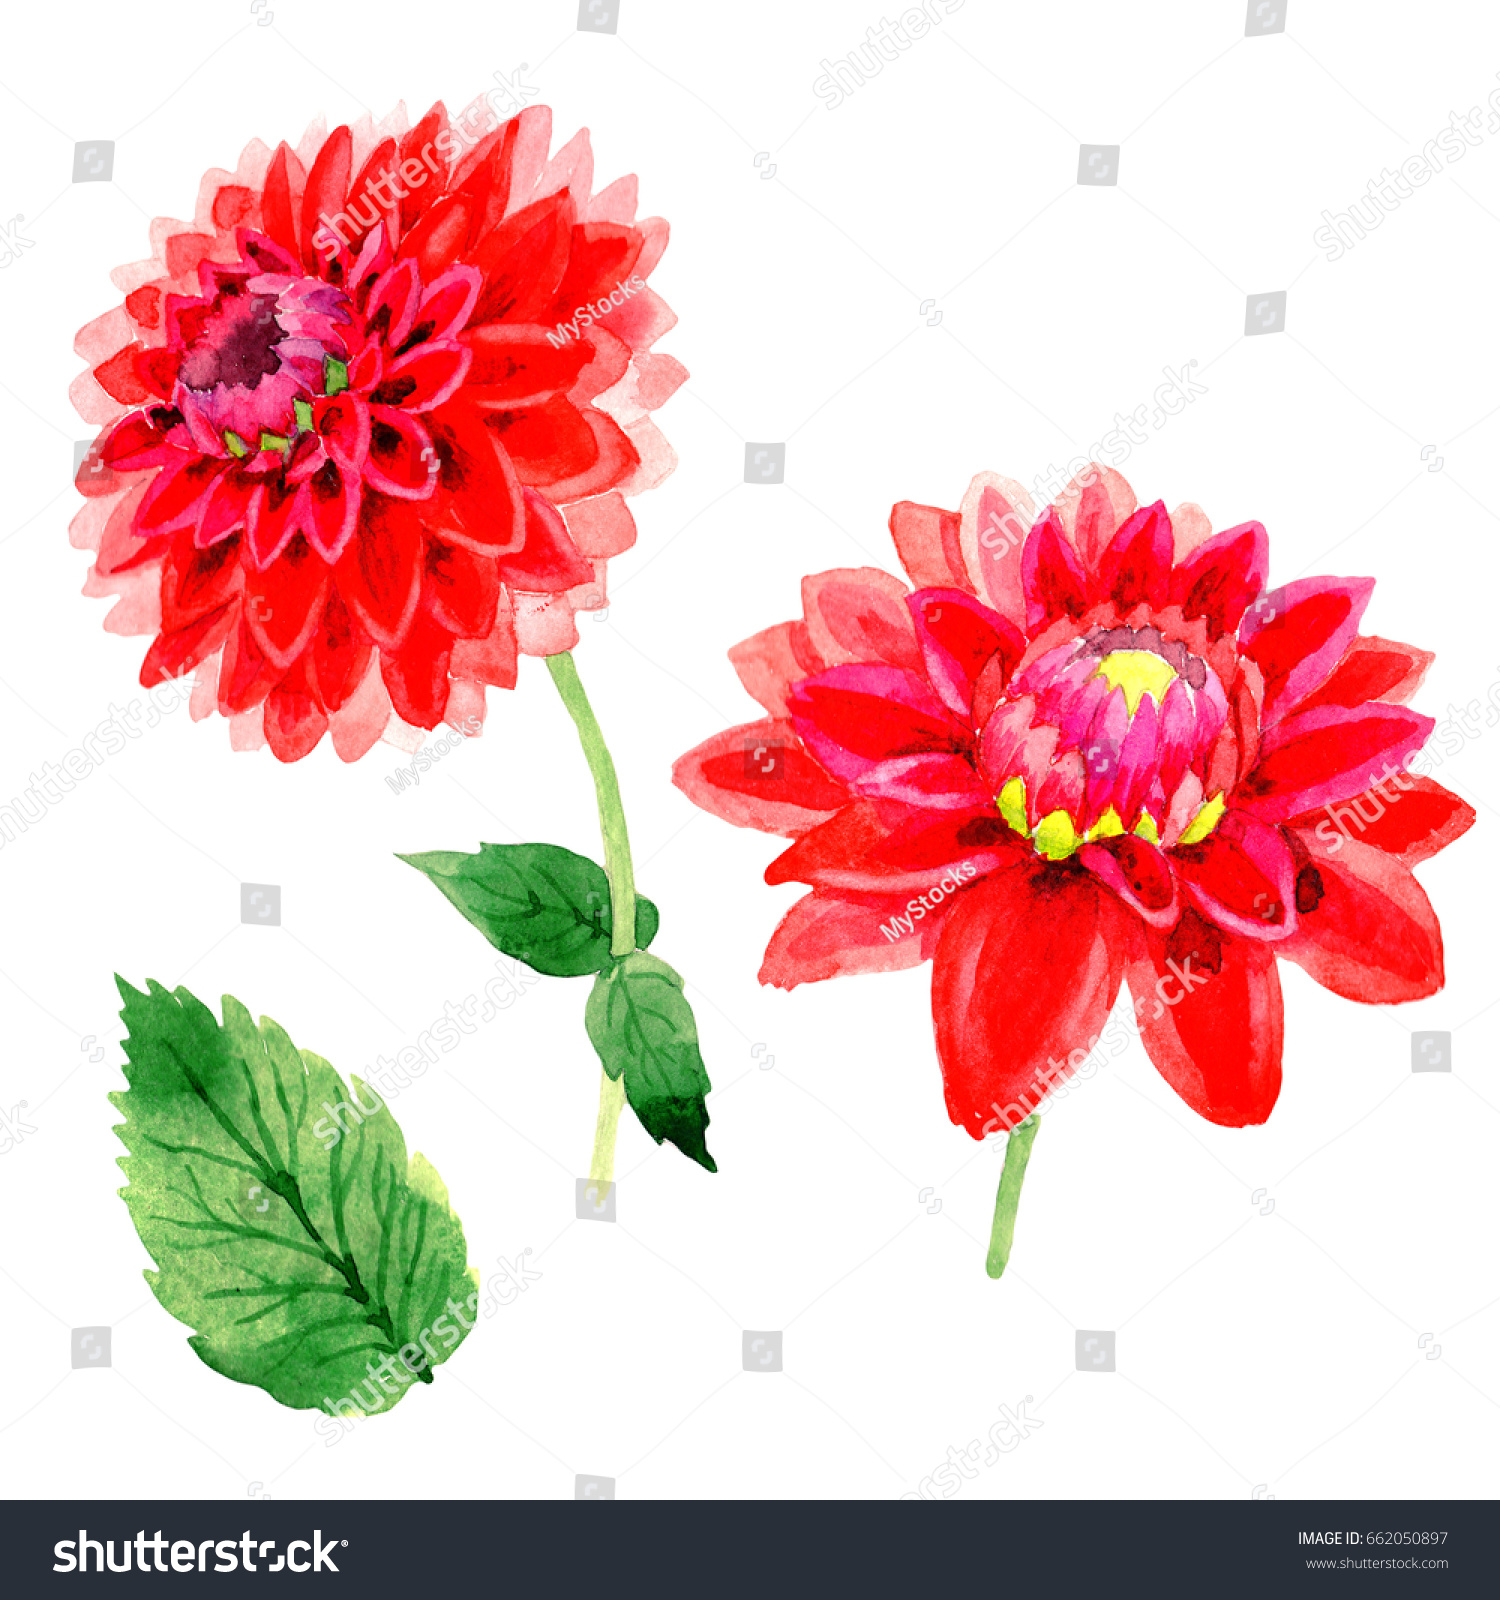 Wildflower dahlia flower watercolor style isolated stock wildflower dahlia flower in a watercolor style isolated full name of the plant red izmirmasajfo